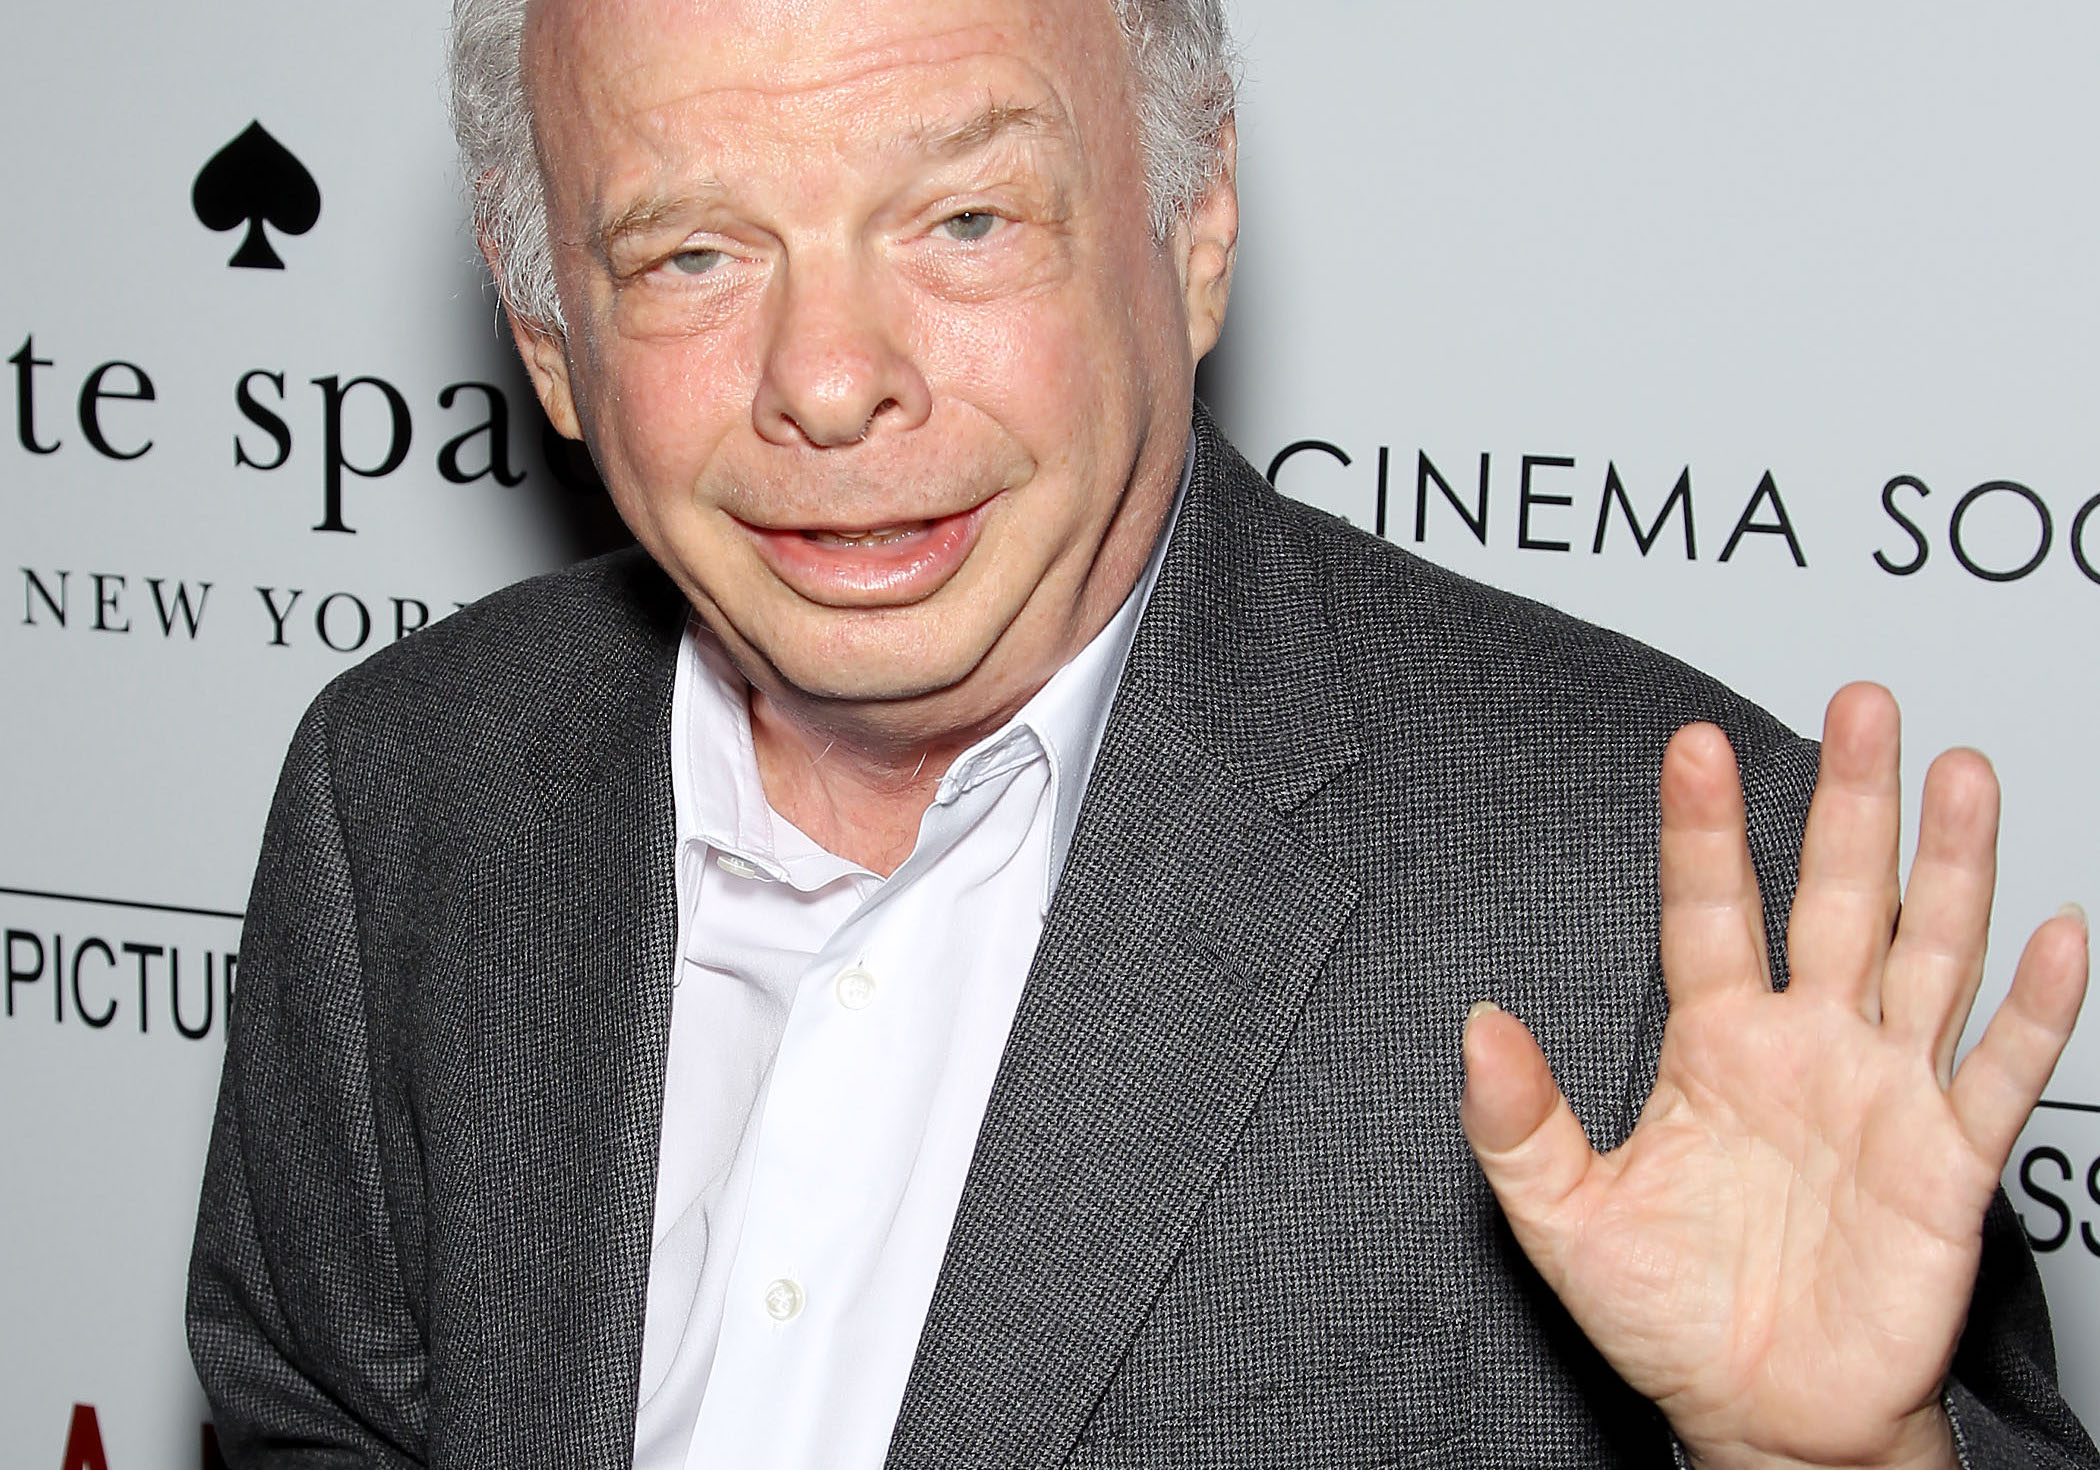 Wallace Shawn Doesn't Own a TV Because George Orwell's '1984' Scared Him Off the Whole Idea